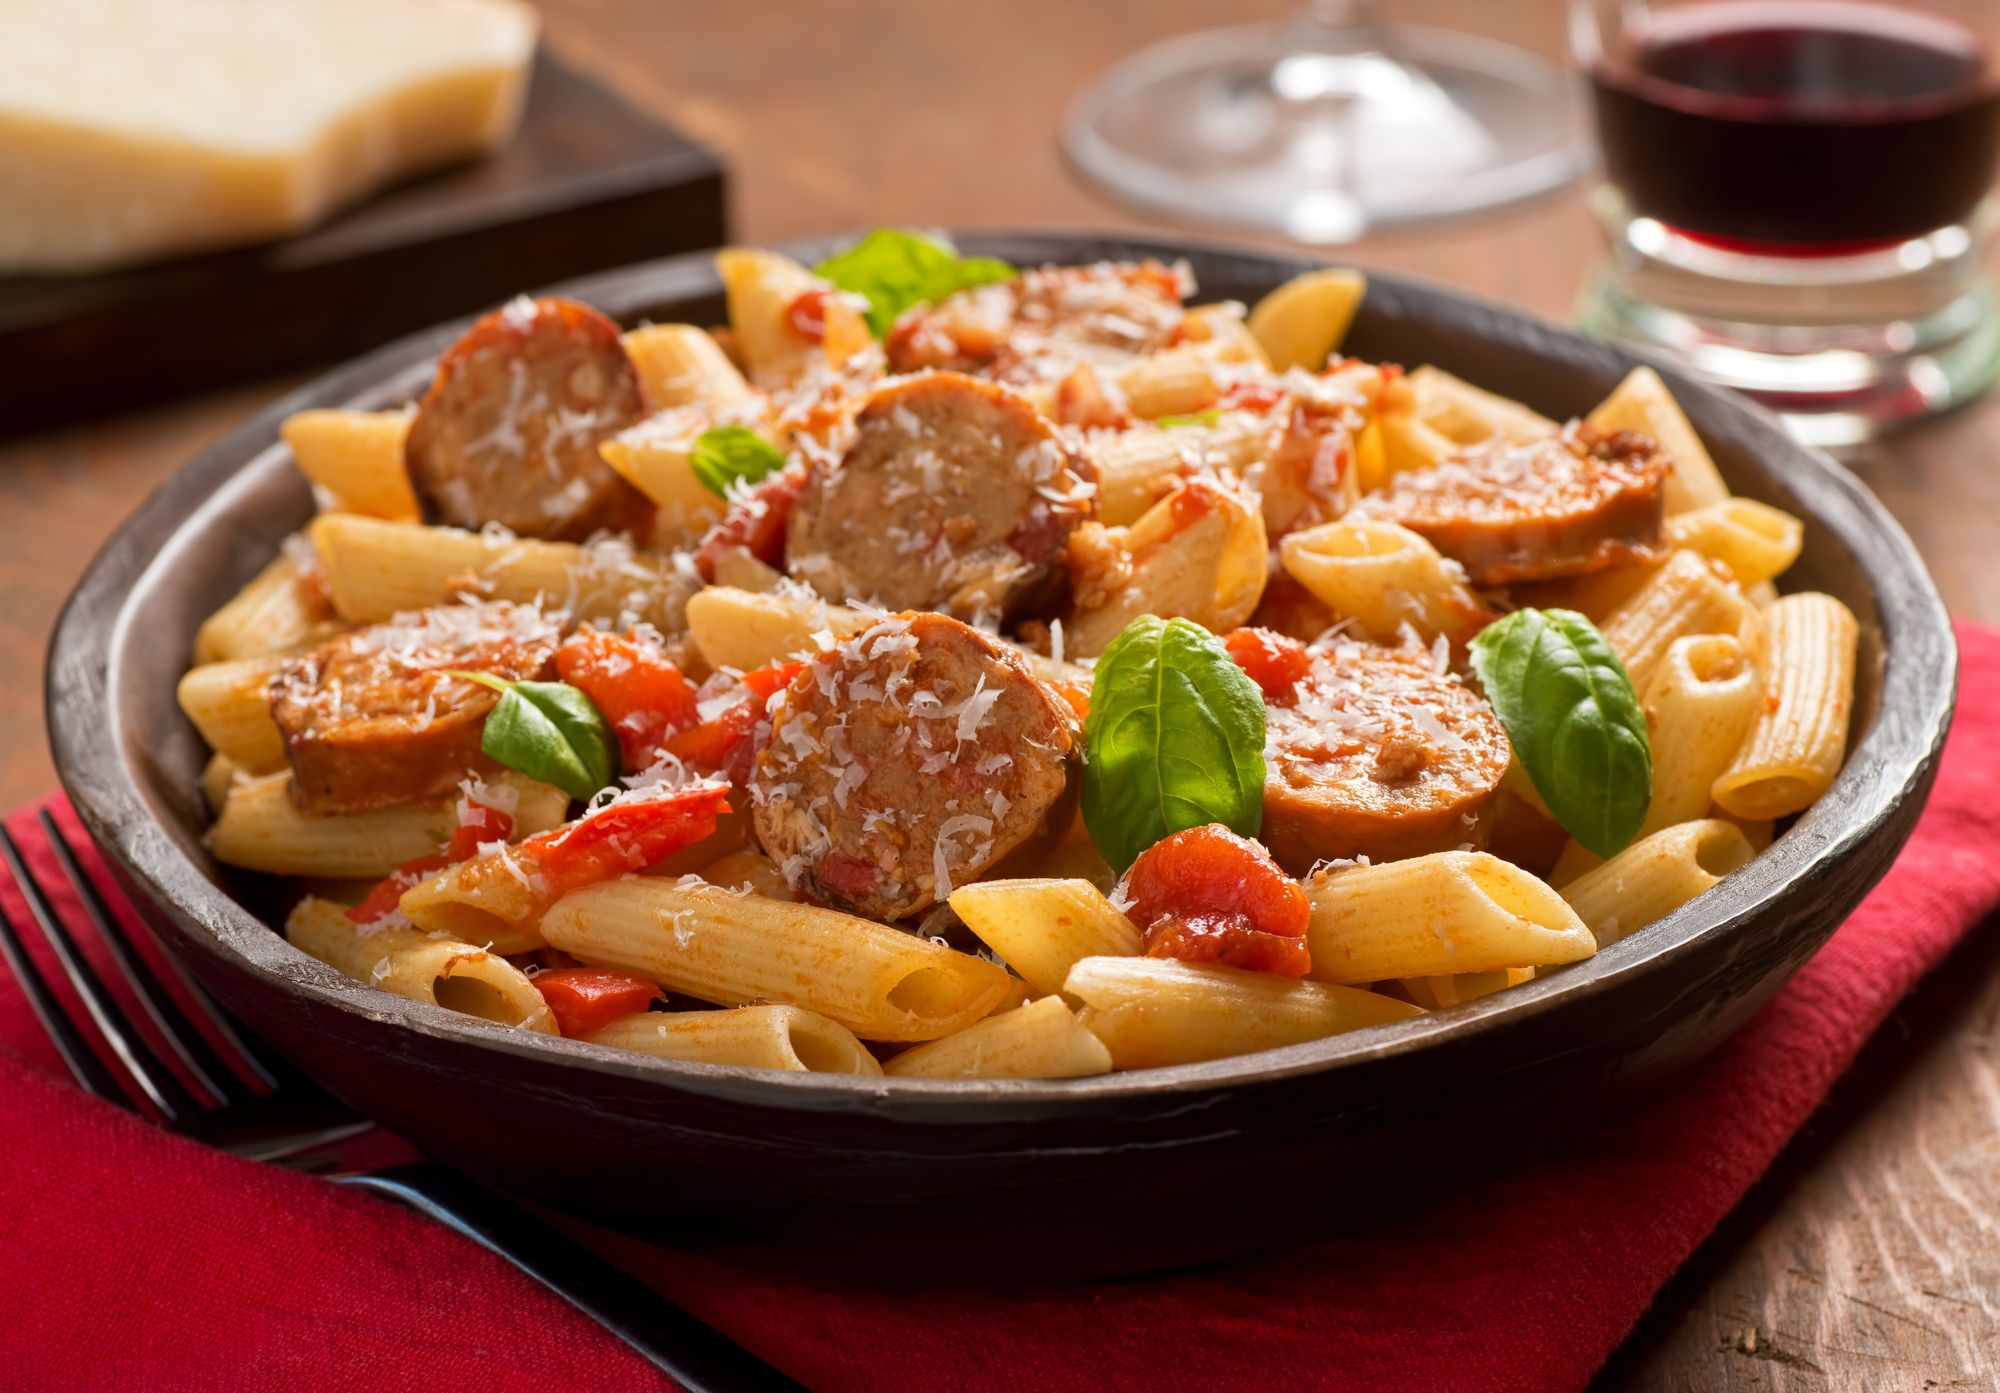 Olive, Tomato, and Spicy Sausage Penne